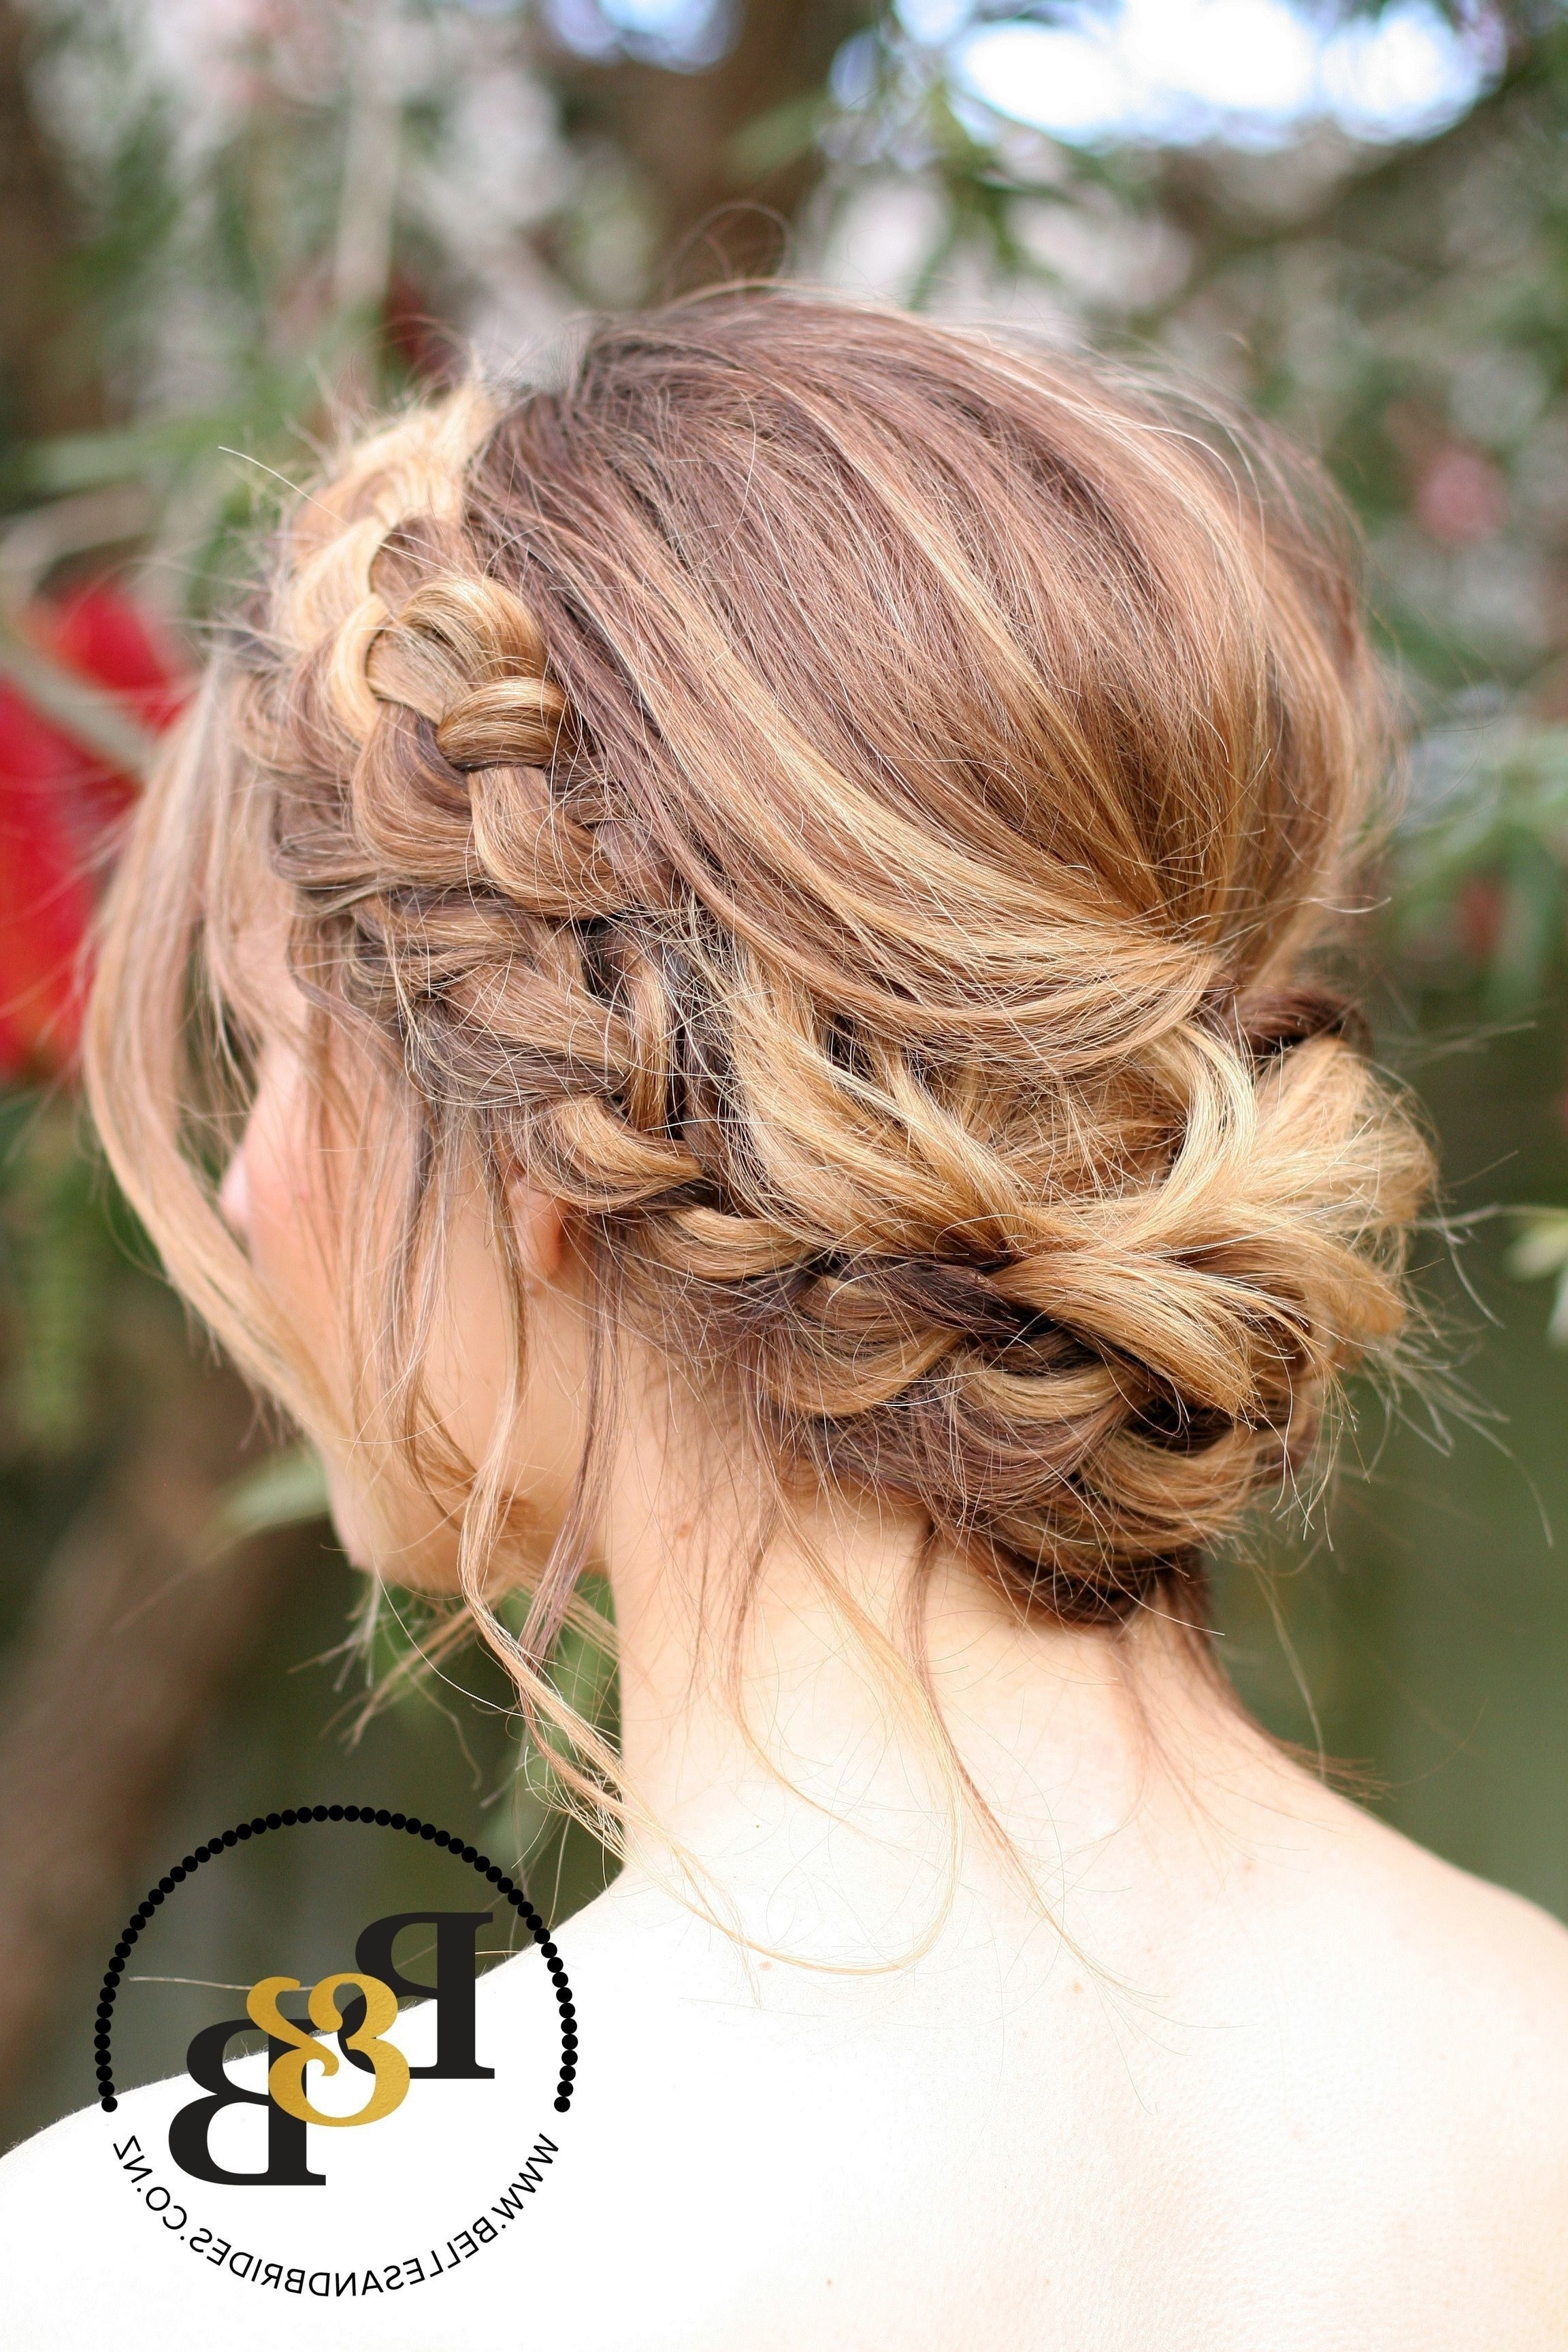 Collections Of Bridesmaid Hair Pinterest Cute Hairstyles For Girls With Regard To Popular Wedding Hairstyles For Teenage Bridesmaids (View 15 of 15)